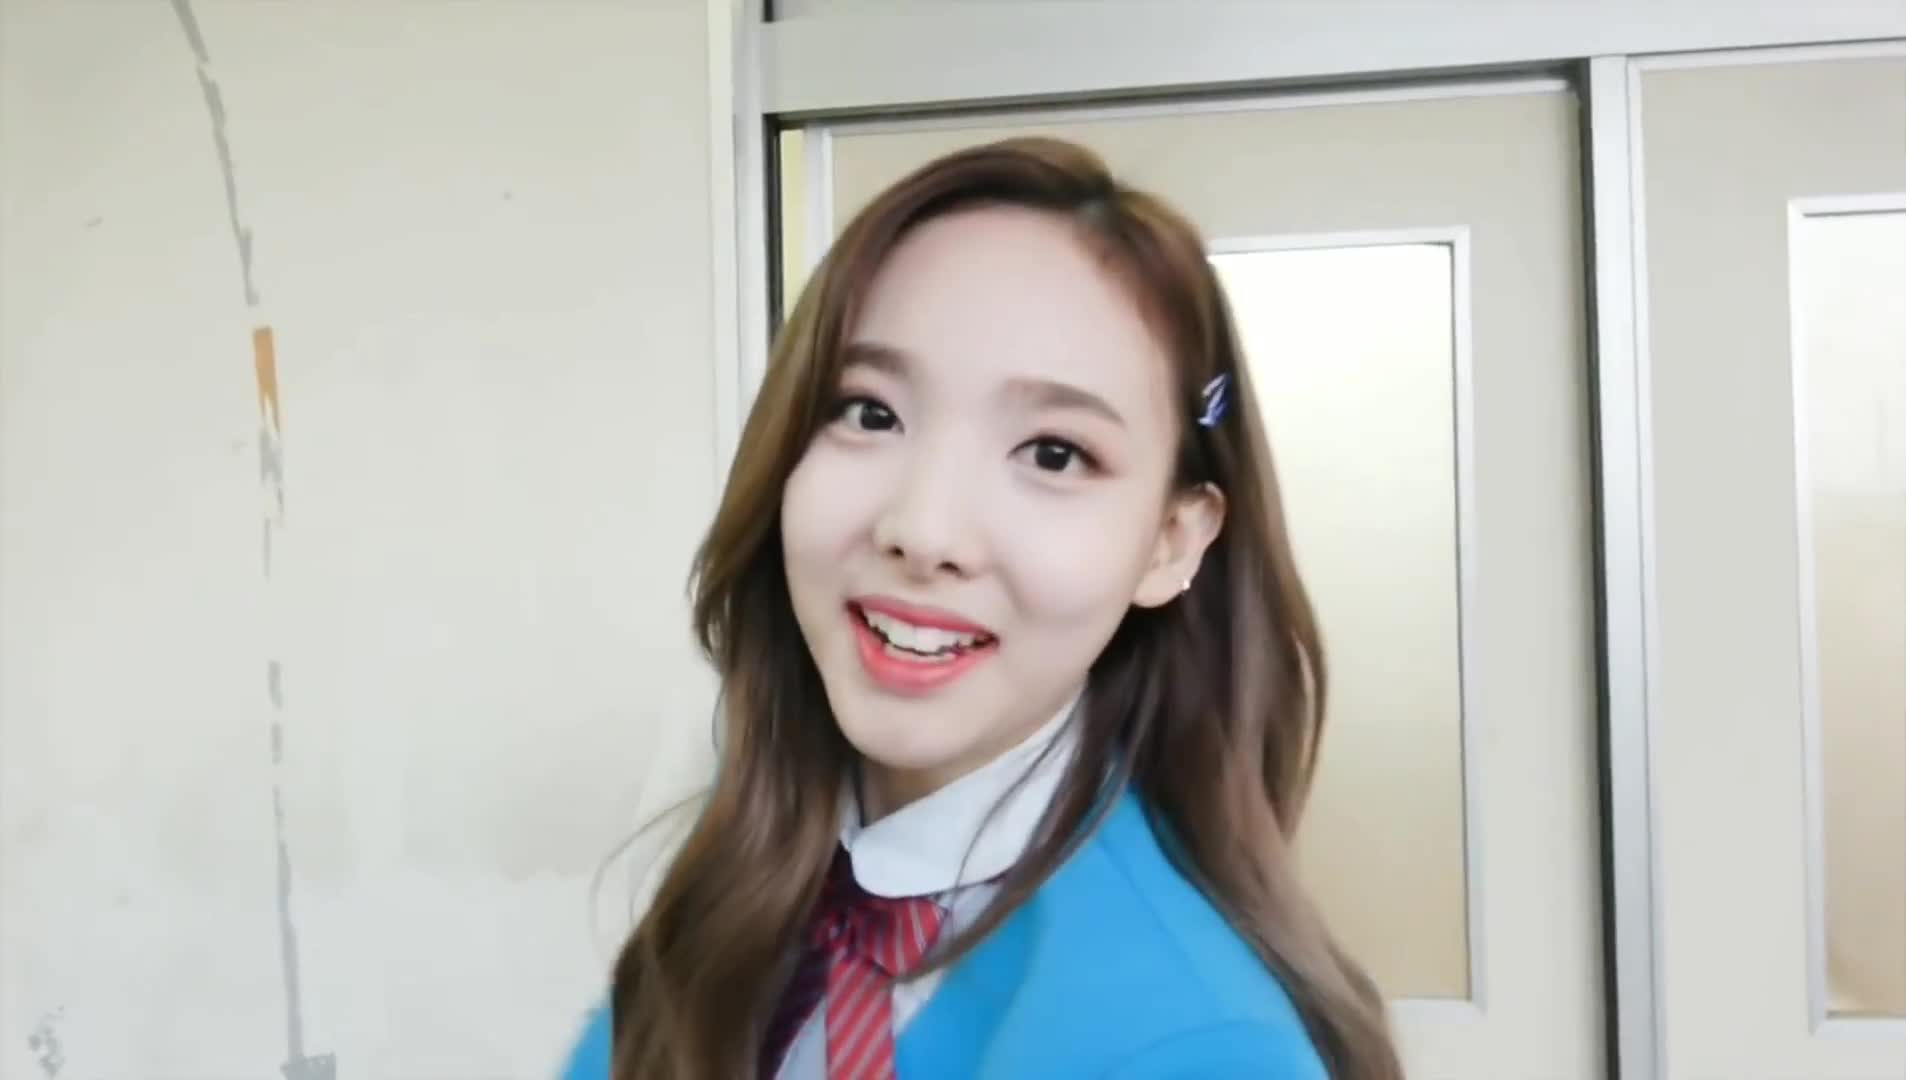 Entertainment, Nayeon, TWICE, トゥワイス, 트와이스, Nayeon saying goodbye GIFs